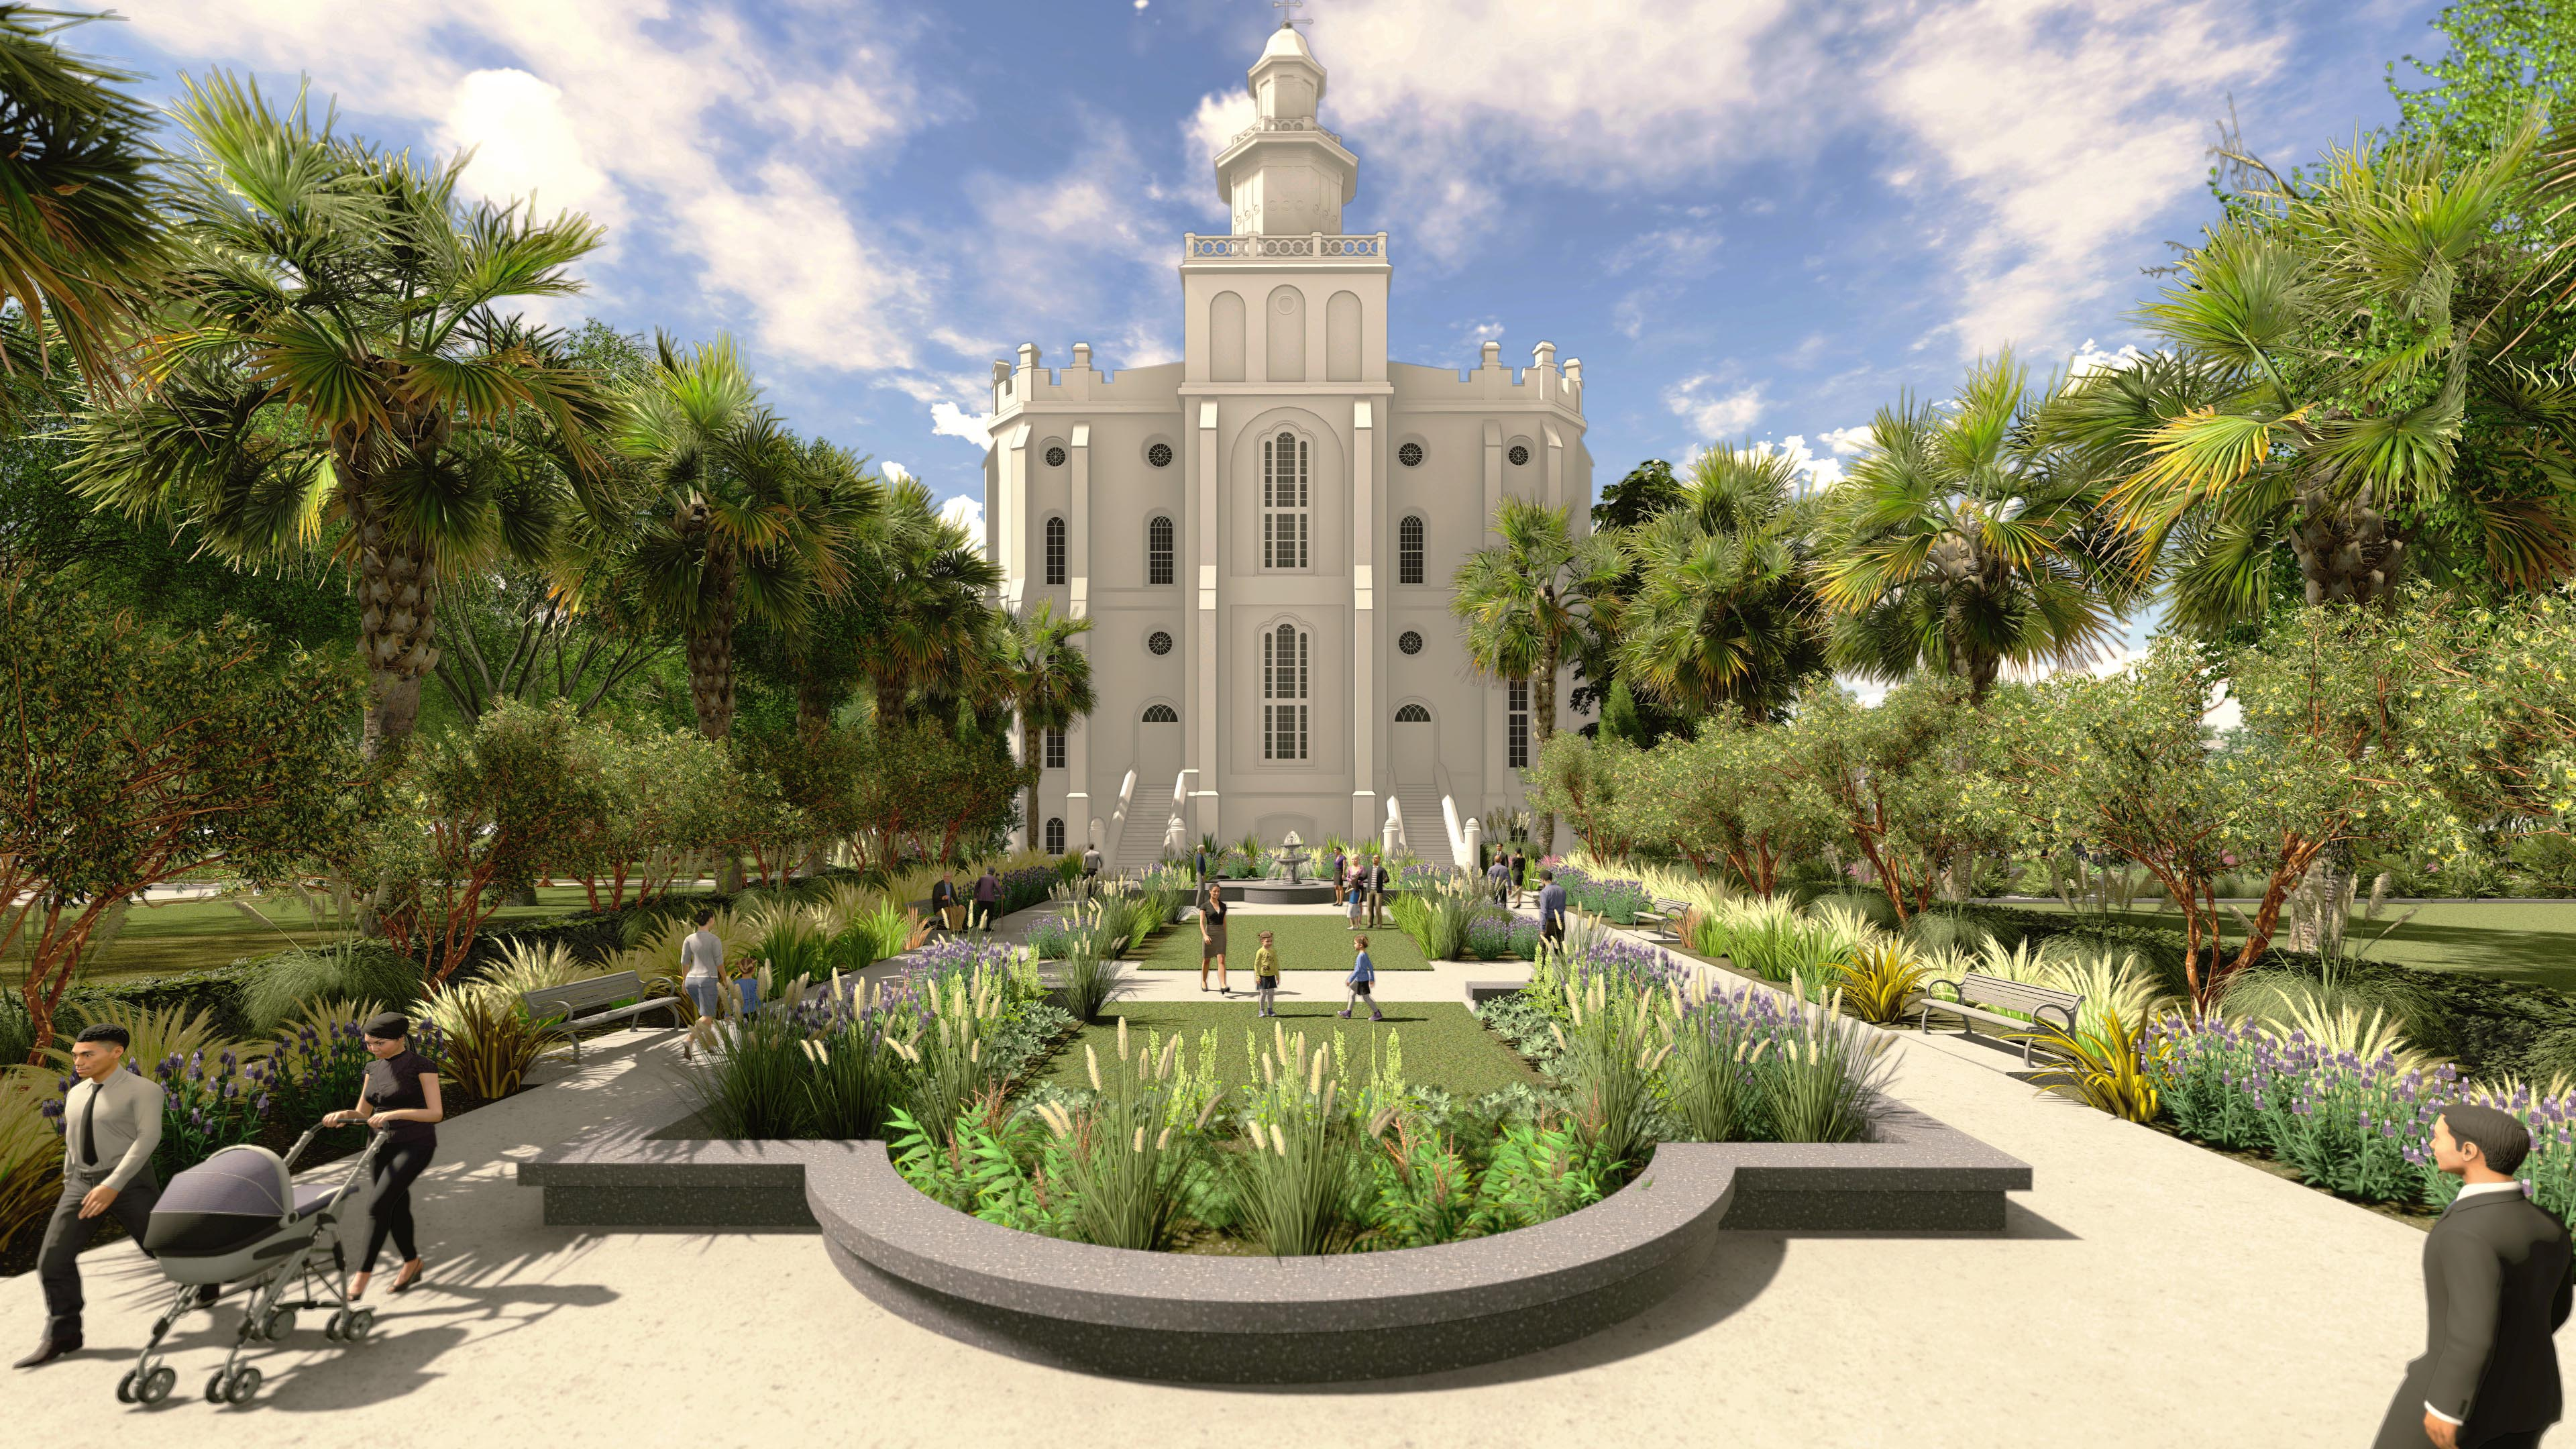 Rendering of the east elevation plaza at the St. George Utah Temple. The temple closed on Nov. 4, 2019, for extensive renovations.